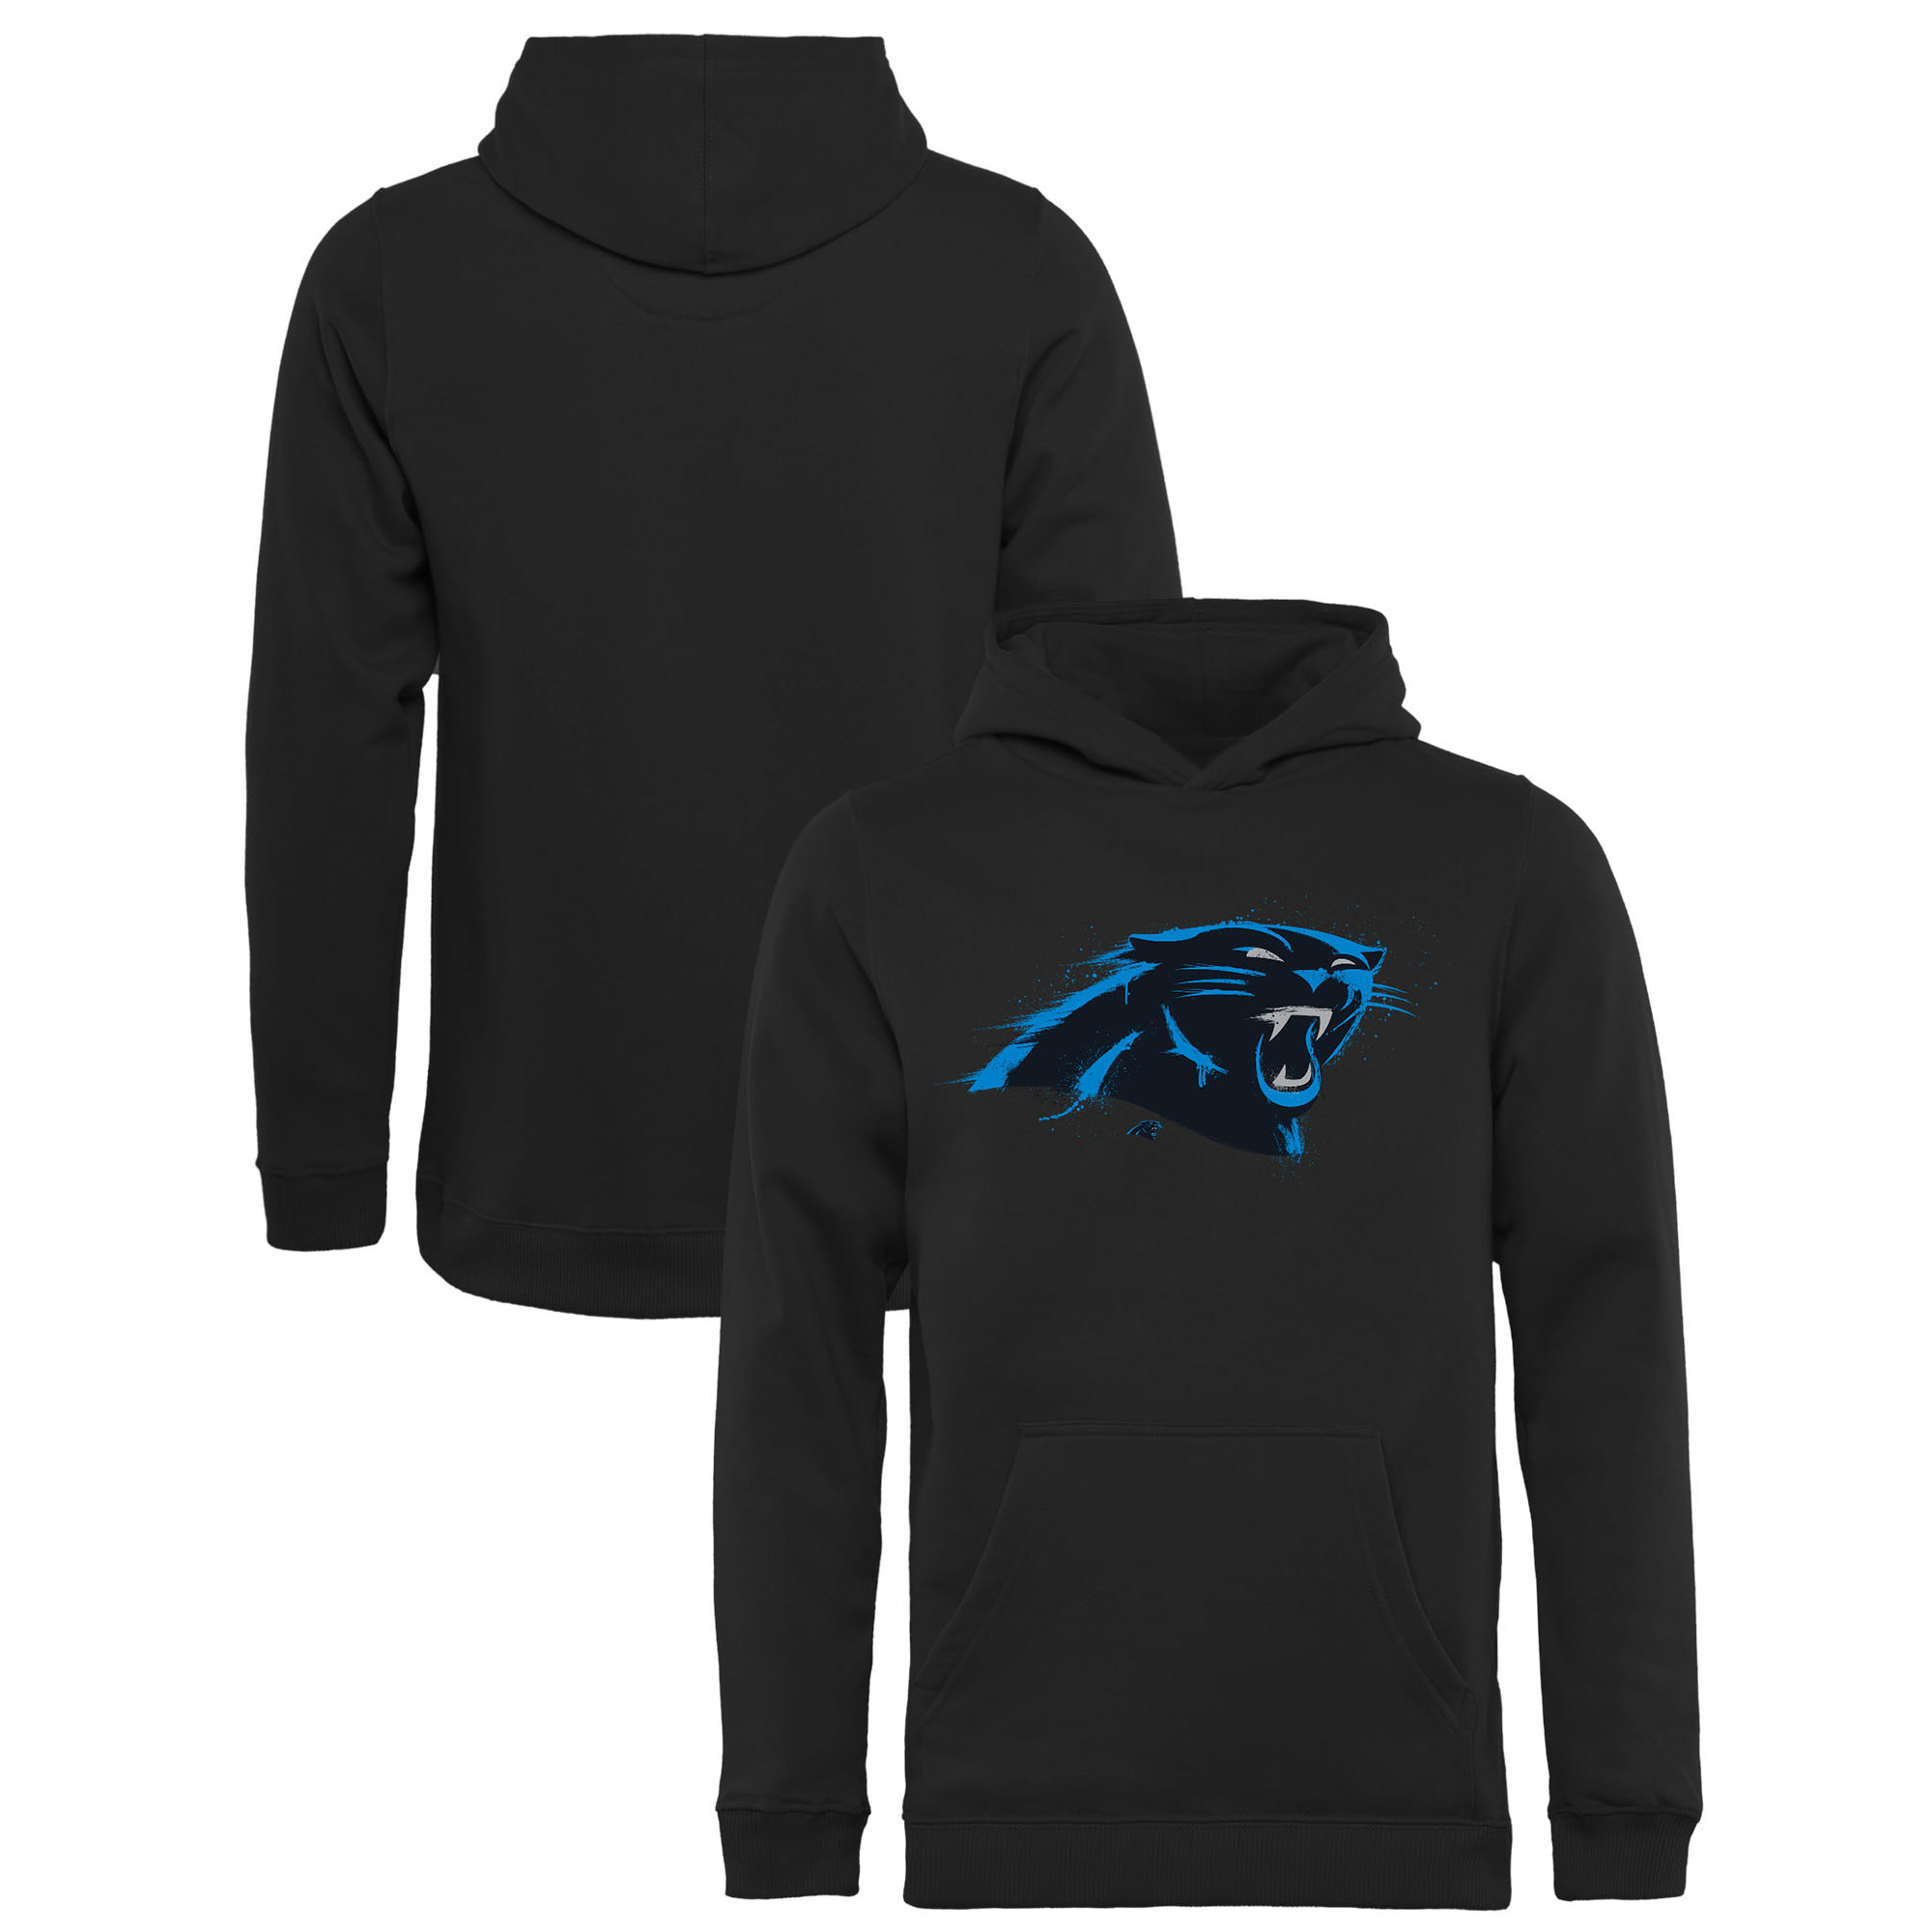 Carolina Panthers NFL Pro Line by Fanatics Branded Youth Splatter Logo Pullover Hoodie - Black